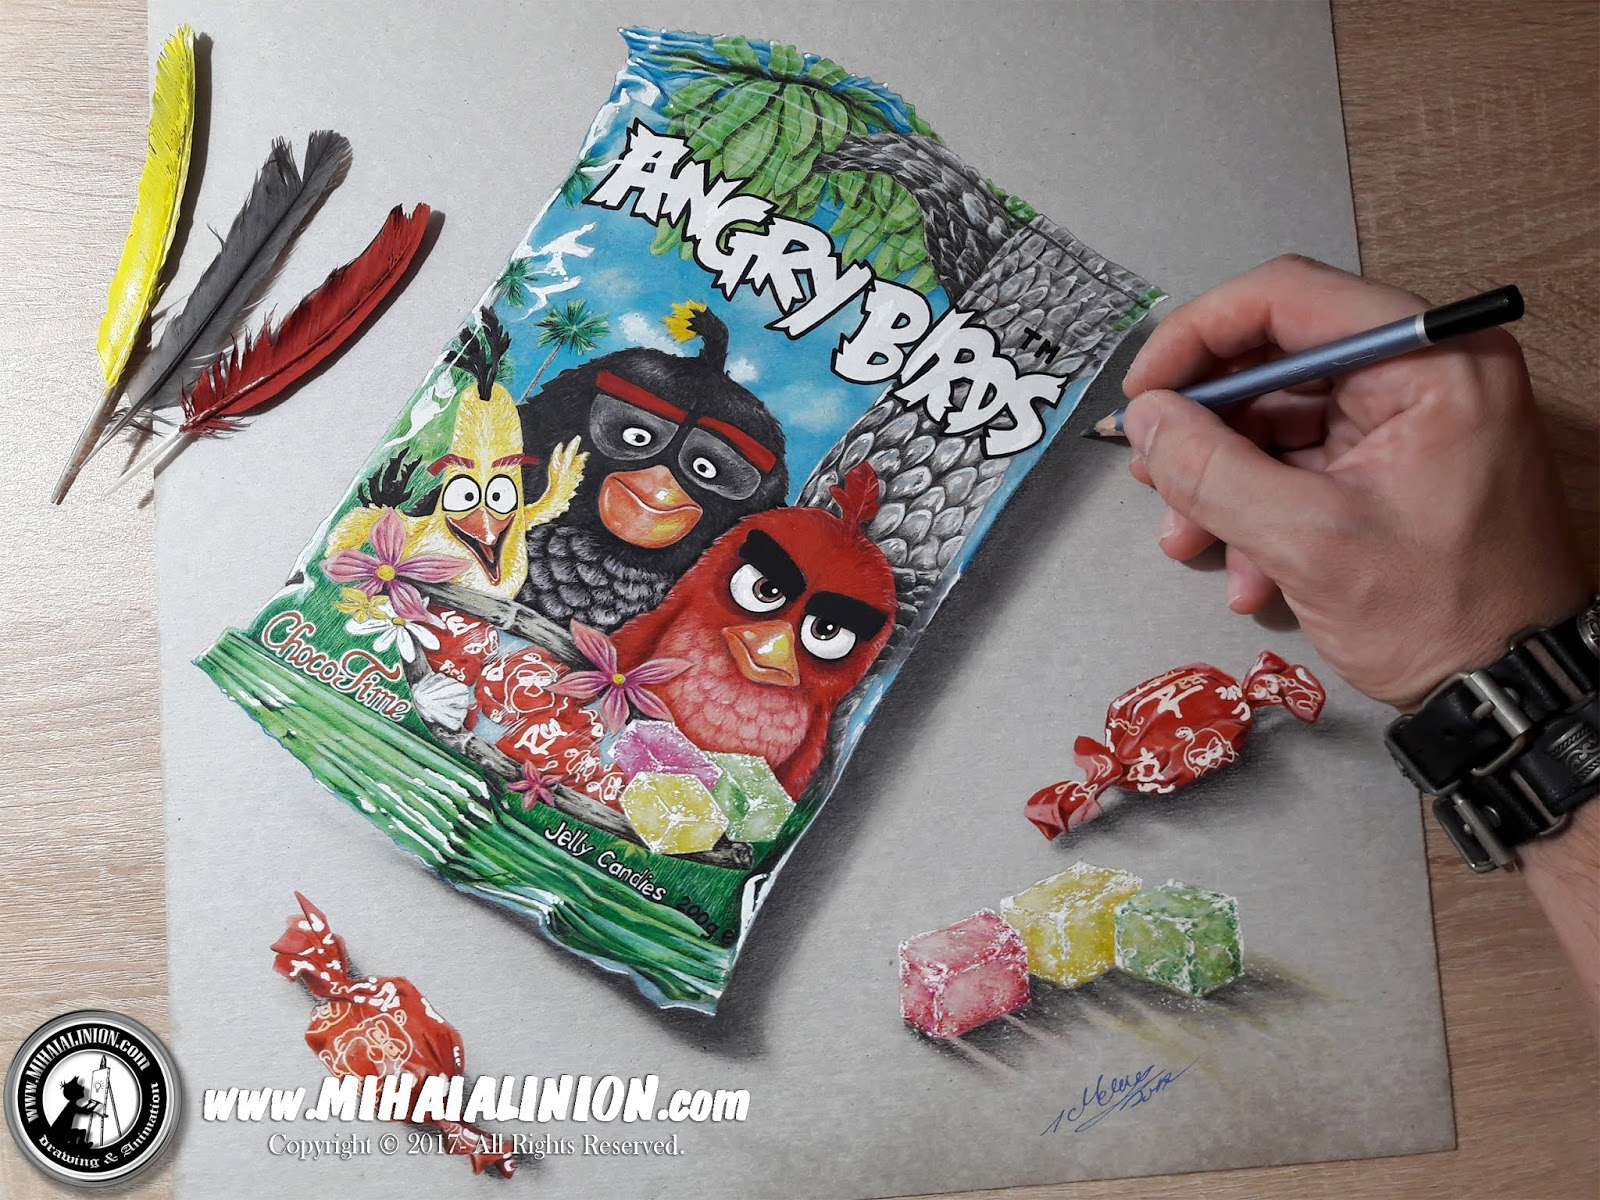 Drawing Angry Birds, Drawing Birds, Drawing Angry Birds Movie, Red, cartoon illustration, crazy birds, funny birds, Bomb, angry birds the game, Chuck, Angry Birds Comics, How to draw angry birds, angry birds pencil drawing, illustrations by mihai alin ion, MAI Comics, Mihai Alin Ion, art by mihai alin ion, how to draw, artselfie, rovio entertainment, drawing ideas, free drawing lessons, drawing tutorial, art, dessin, disegno, dibujo, drawing for kids, drawing, illustration, painting, design, realistic 3d art, coloured pencils, www.mihaialinion.com, 2018, pencil drawing, tempera, acrilics paint, marker, gouache painting, mixed media, comics, comic book, caricature, portrait, cum sa desenezi, caricaturi mihai alin ion, caricaturi si portrete  la comanda, eveniment caricaturi, caricaturi la nunta, caricaturi la botez, caricaturi la majorat, desene pe pereti, desene pentru copii, ilustratie carte, benzi desenate, caricaturi, portrete, comanda caricaturi